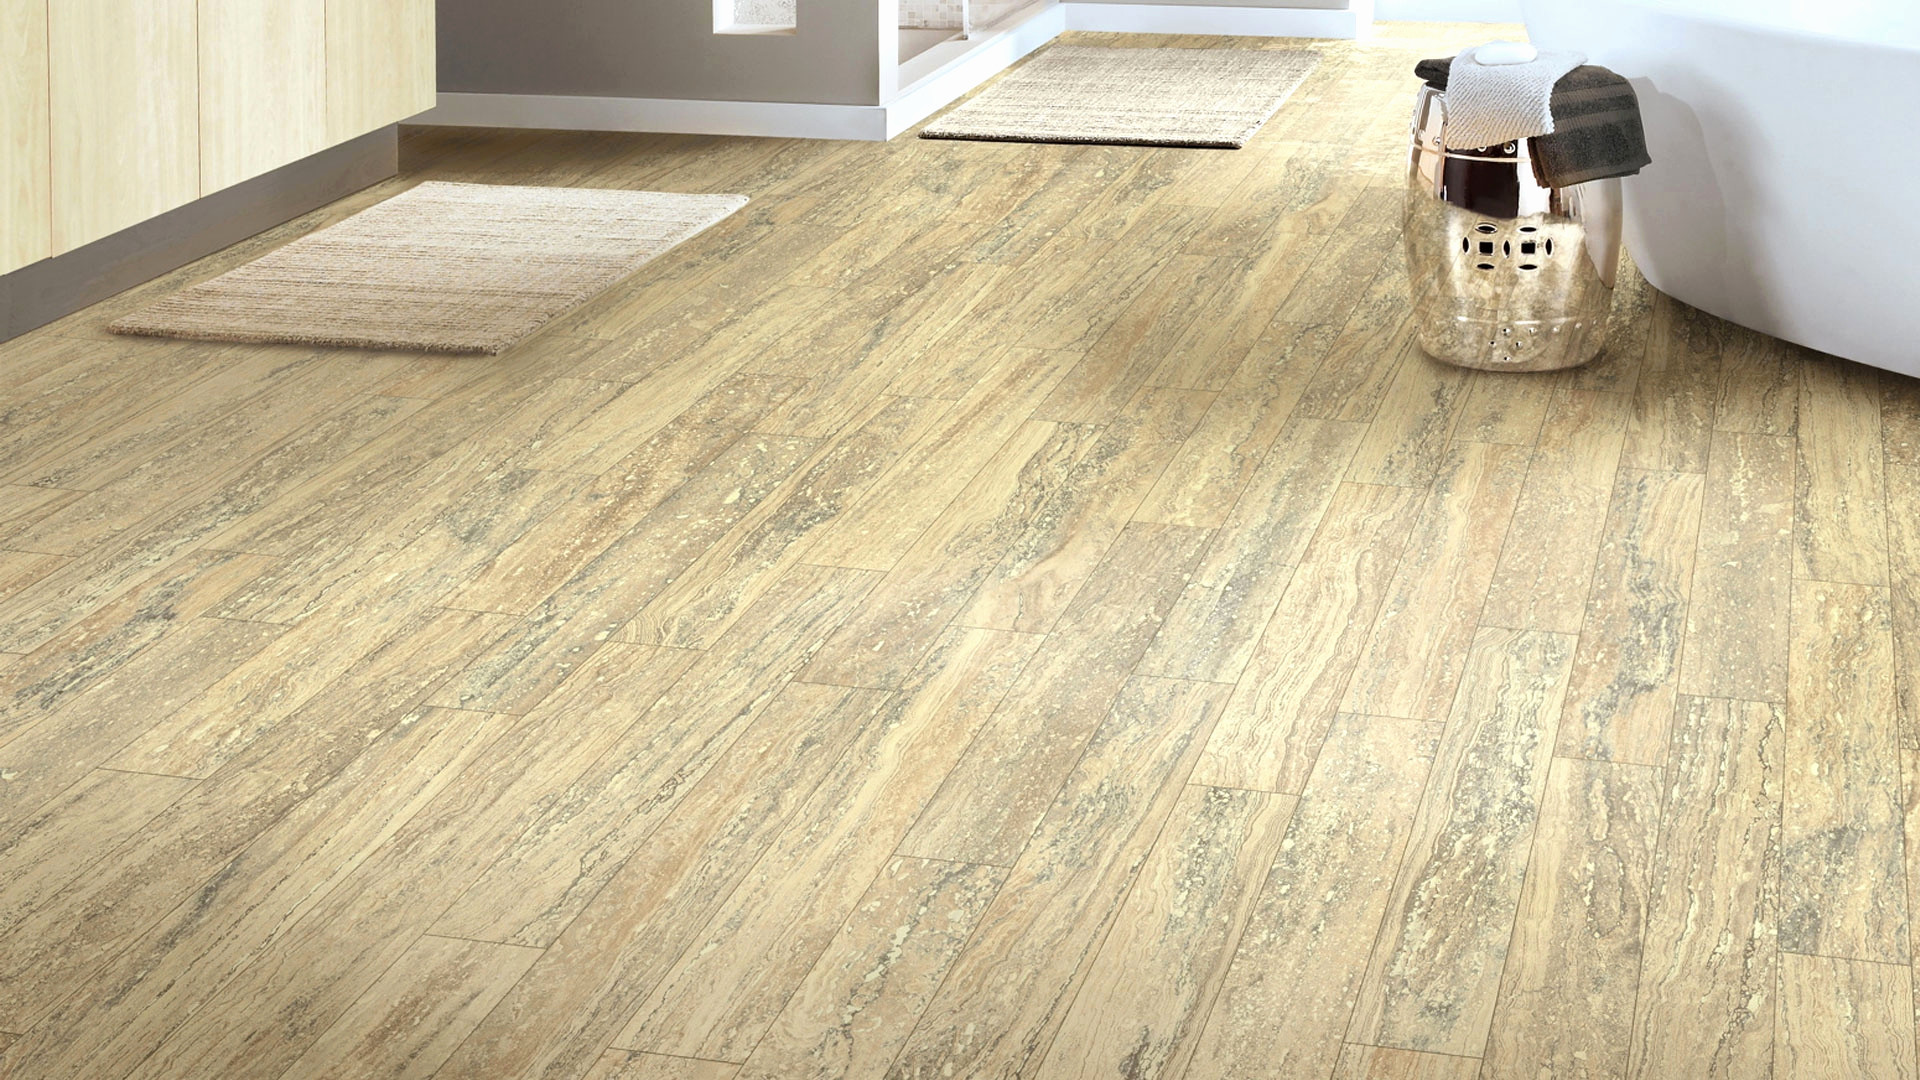 best hardwood floors los angeles of hardwood flooring deals laminate wood floor in bathroom best throughout hardwood flooring deals laminate wood floor in bathroom best laminate floors vs hardwood